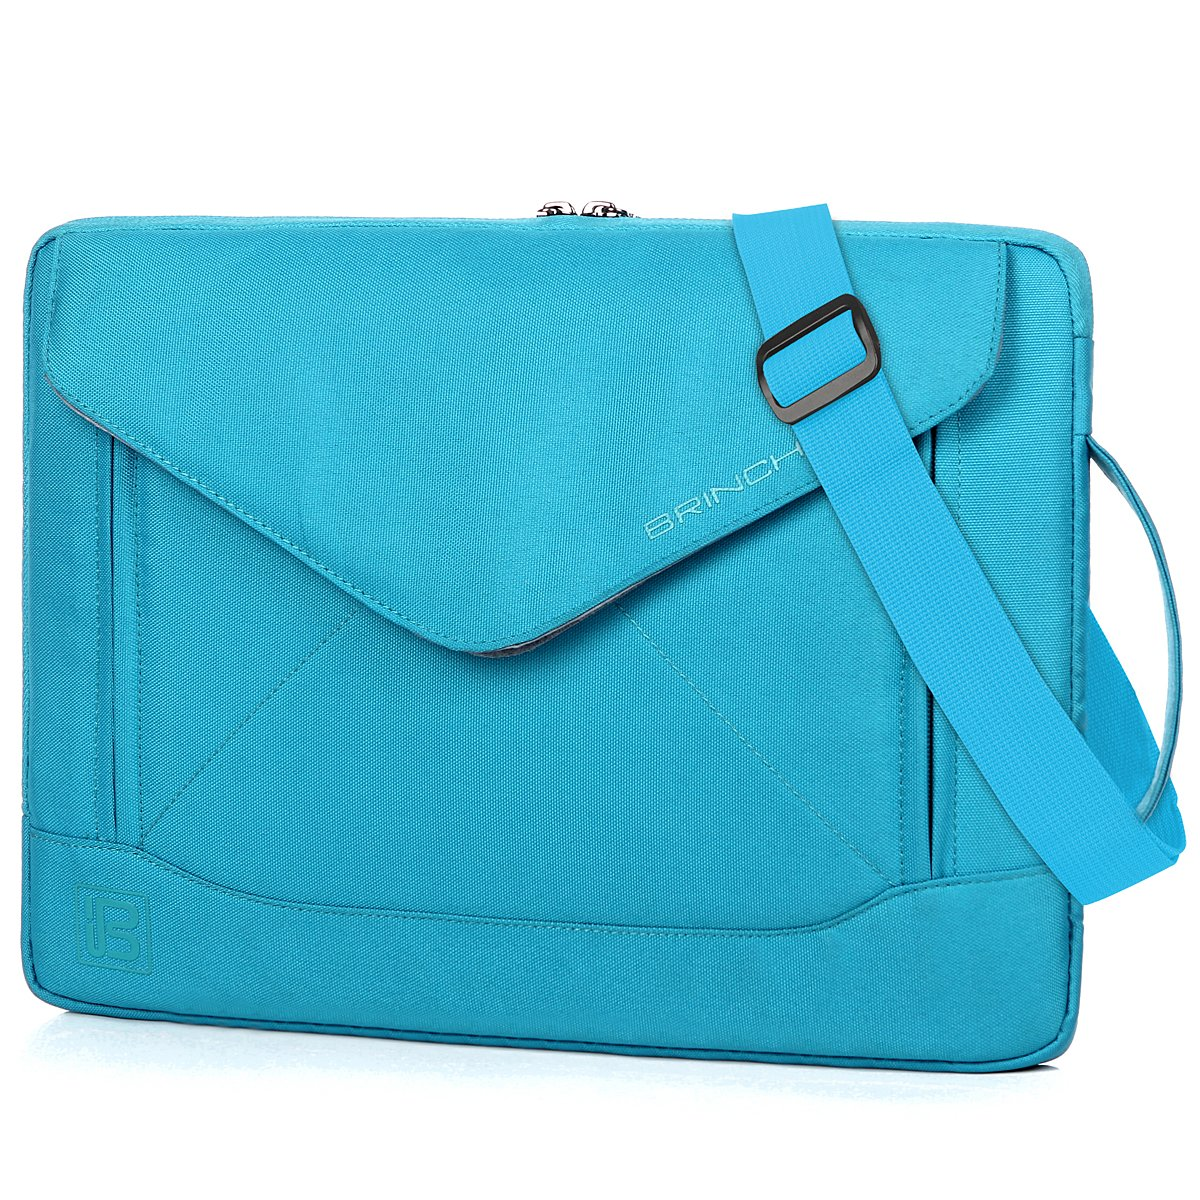 BRINCH Durable Envelope Nylon 15-15.6 Inch Laptop/Notebook/Macbook/Ultrabook/Tablet Computer Bag Shoulder Carrying Envelope Case Pouch Sleeve With Shoulder Strap Pockets and Card Slots (Blue)